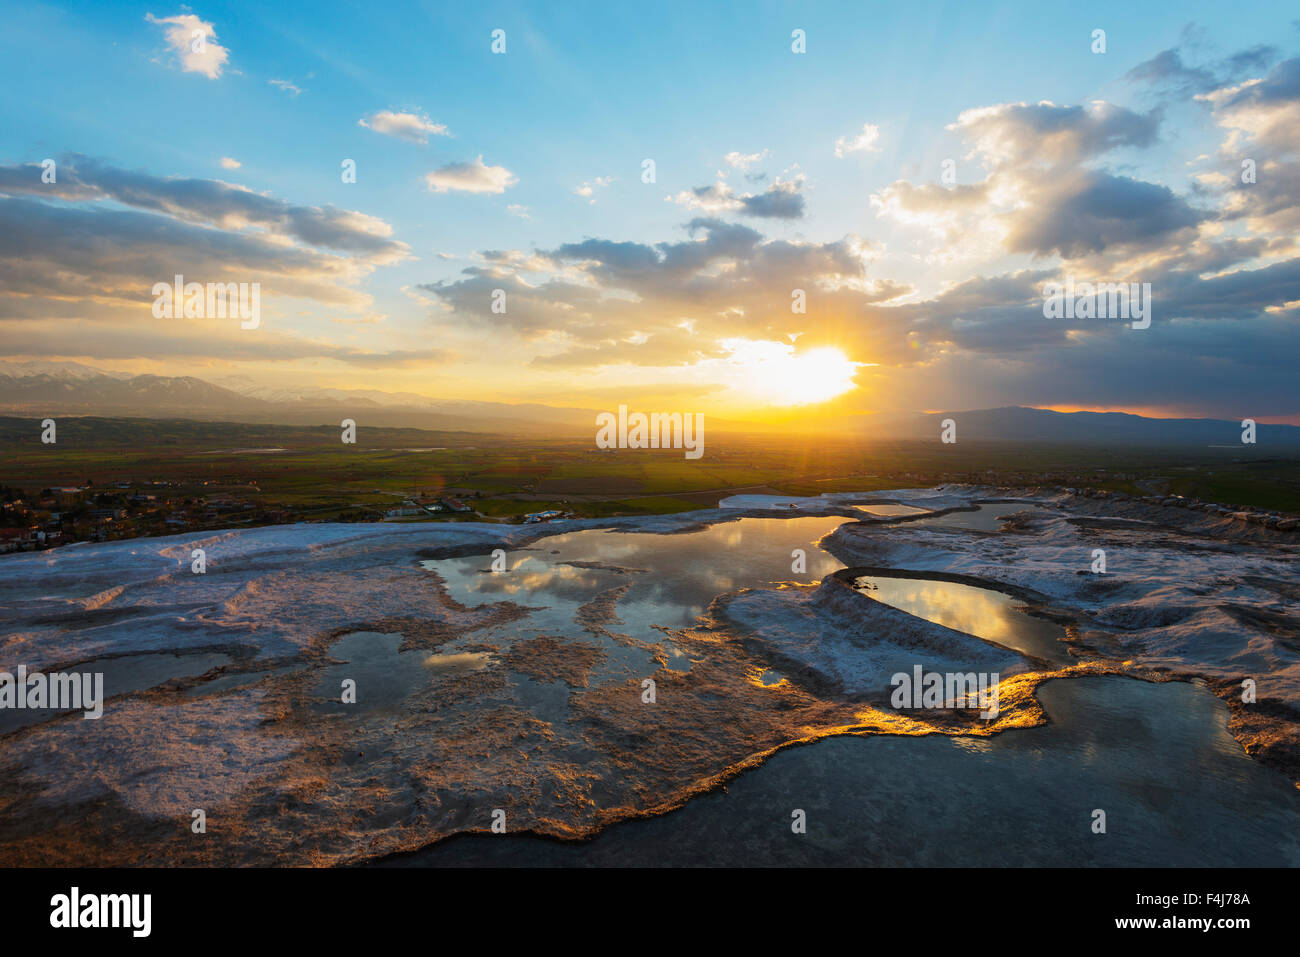 White travertine basins at sunset, Pamukkale, UNESCO World Heritage Site, Anatolia, Turkey, Asia Minor, Eurasia - Stock Image